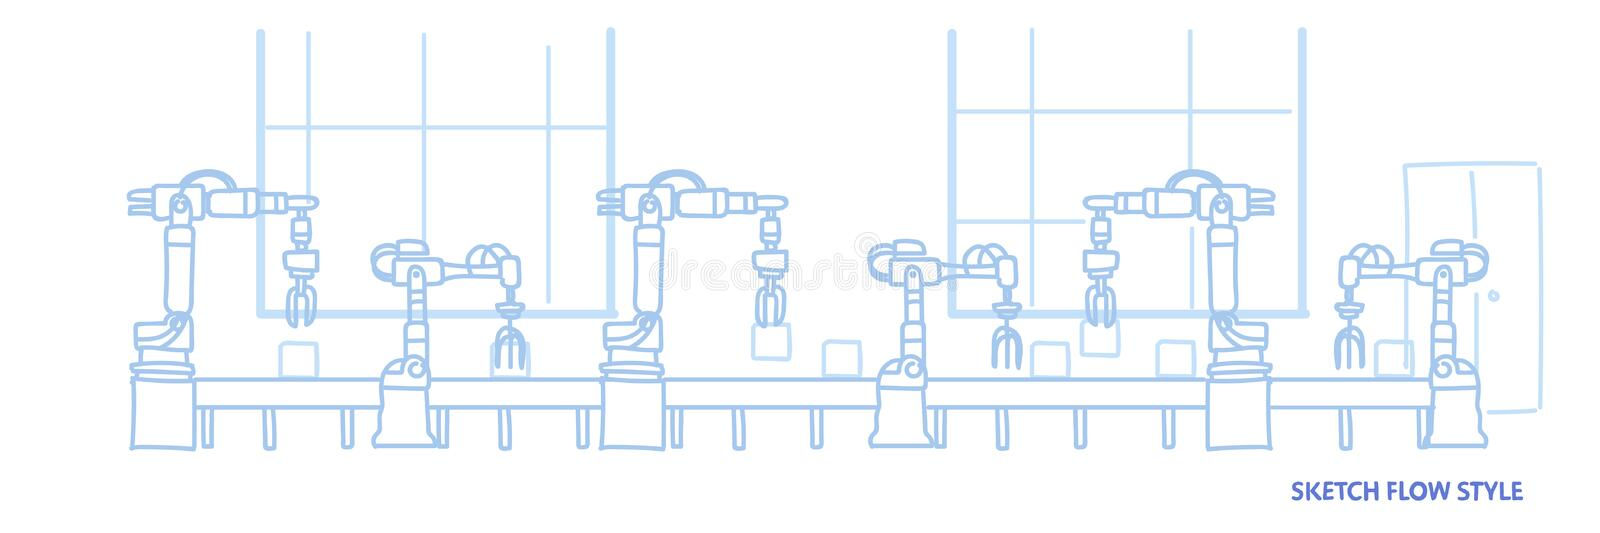 Factory production conveyor automatic assembly line machinery industrial automation industry concept sketch flow style. Horizontal vector illustration royalty free illustration